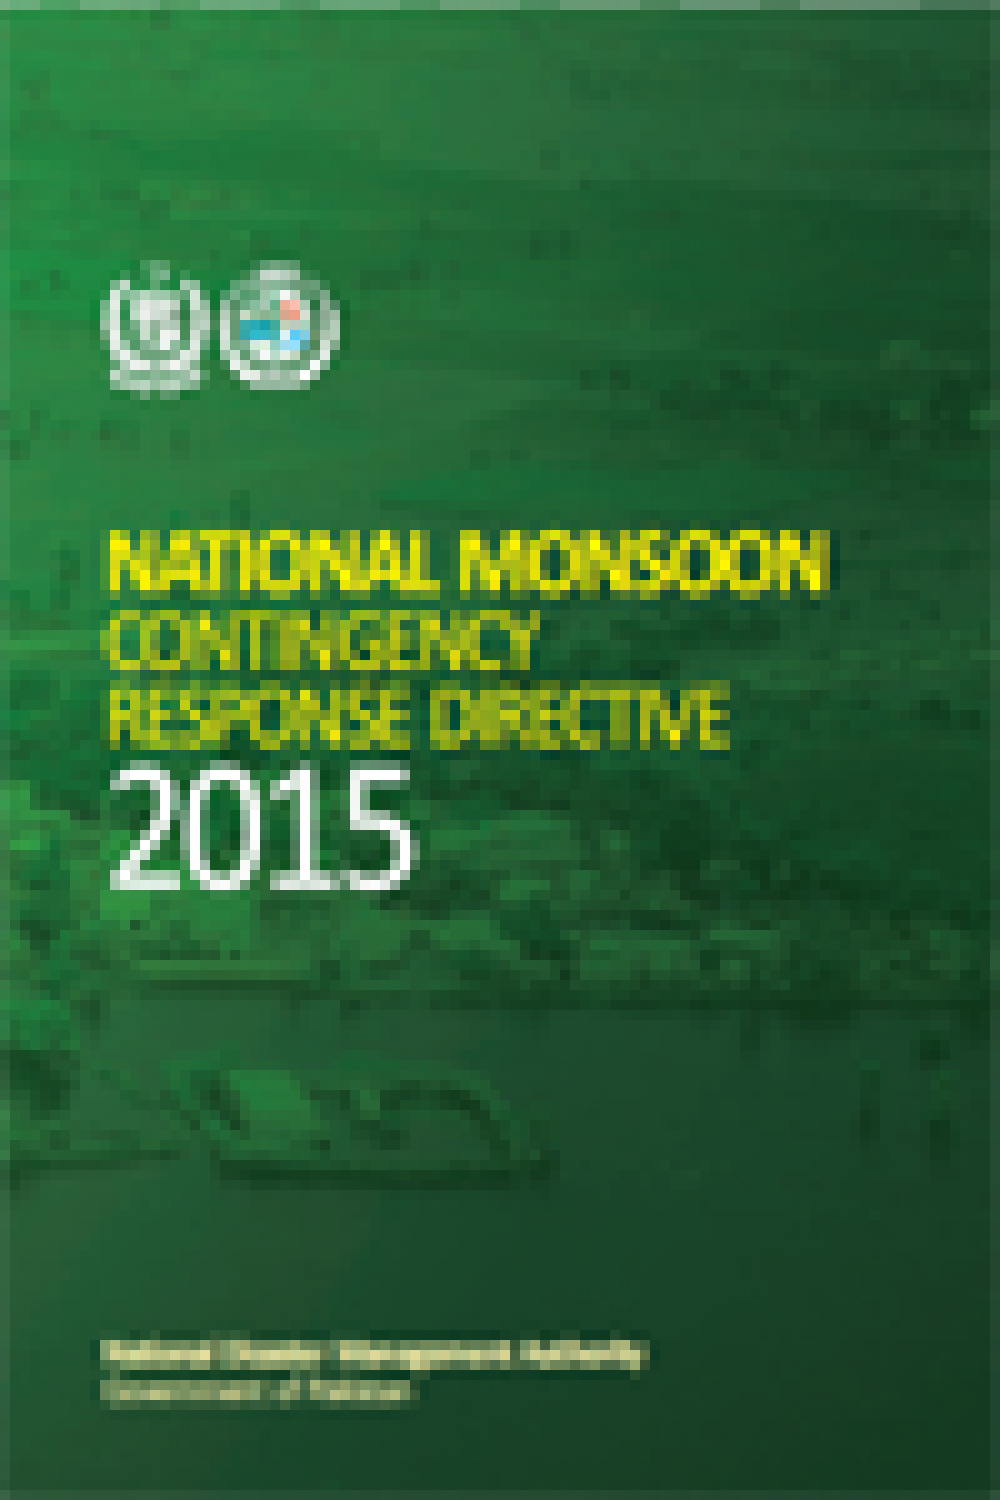 National Monsoon Contingency Response Directive 2015